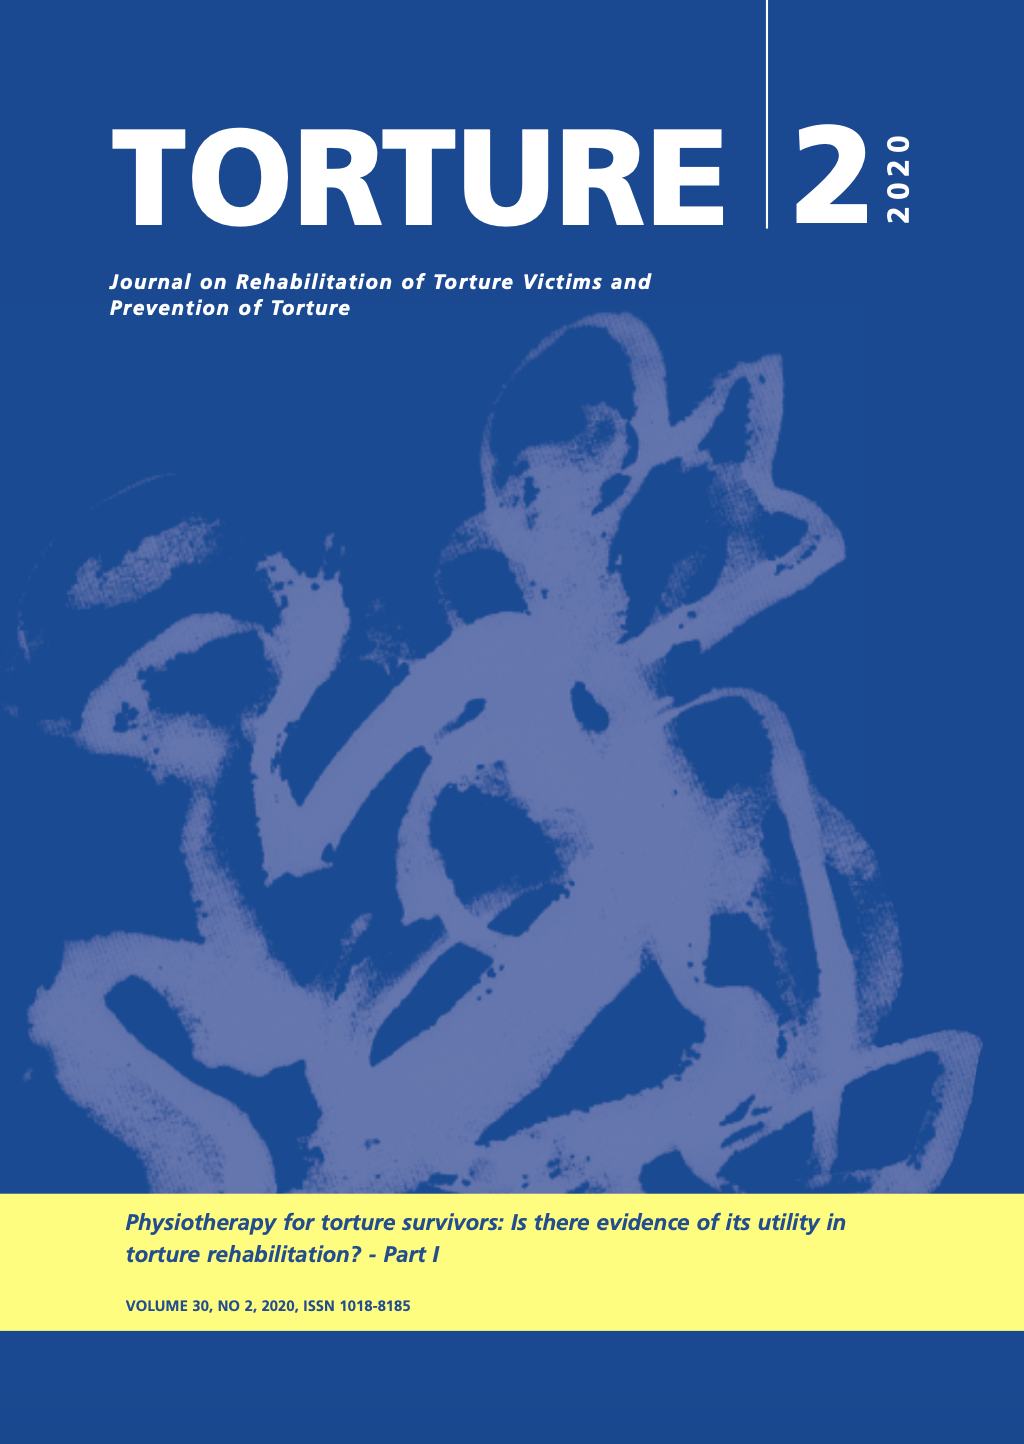 View Vol. 30 No. 2 (2020): Journal on Rehabilitation of Torture Victims and Prevention of Torture